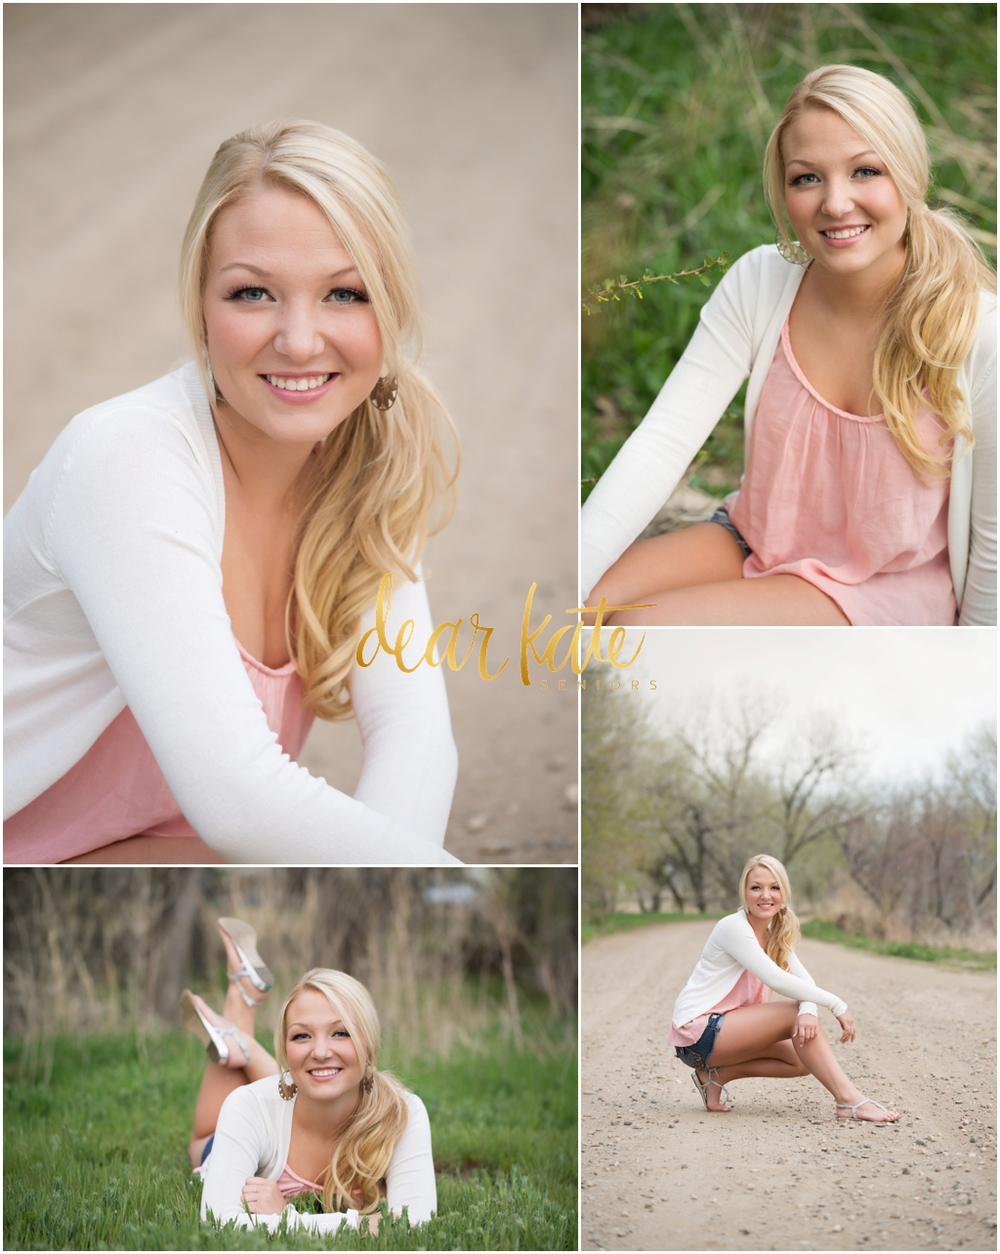 Loveland Senior Portraits Outdoors